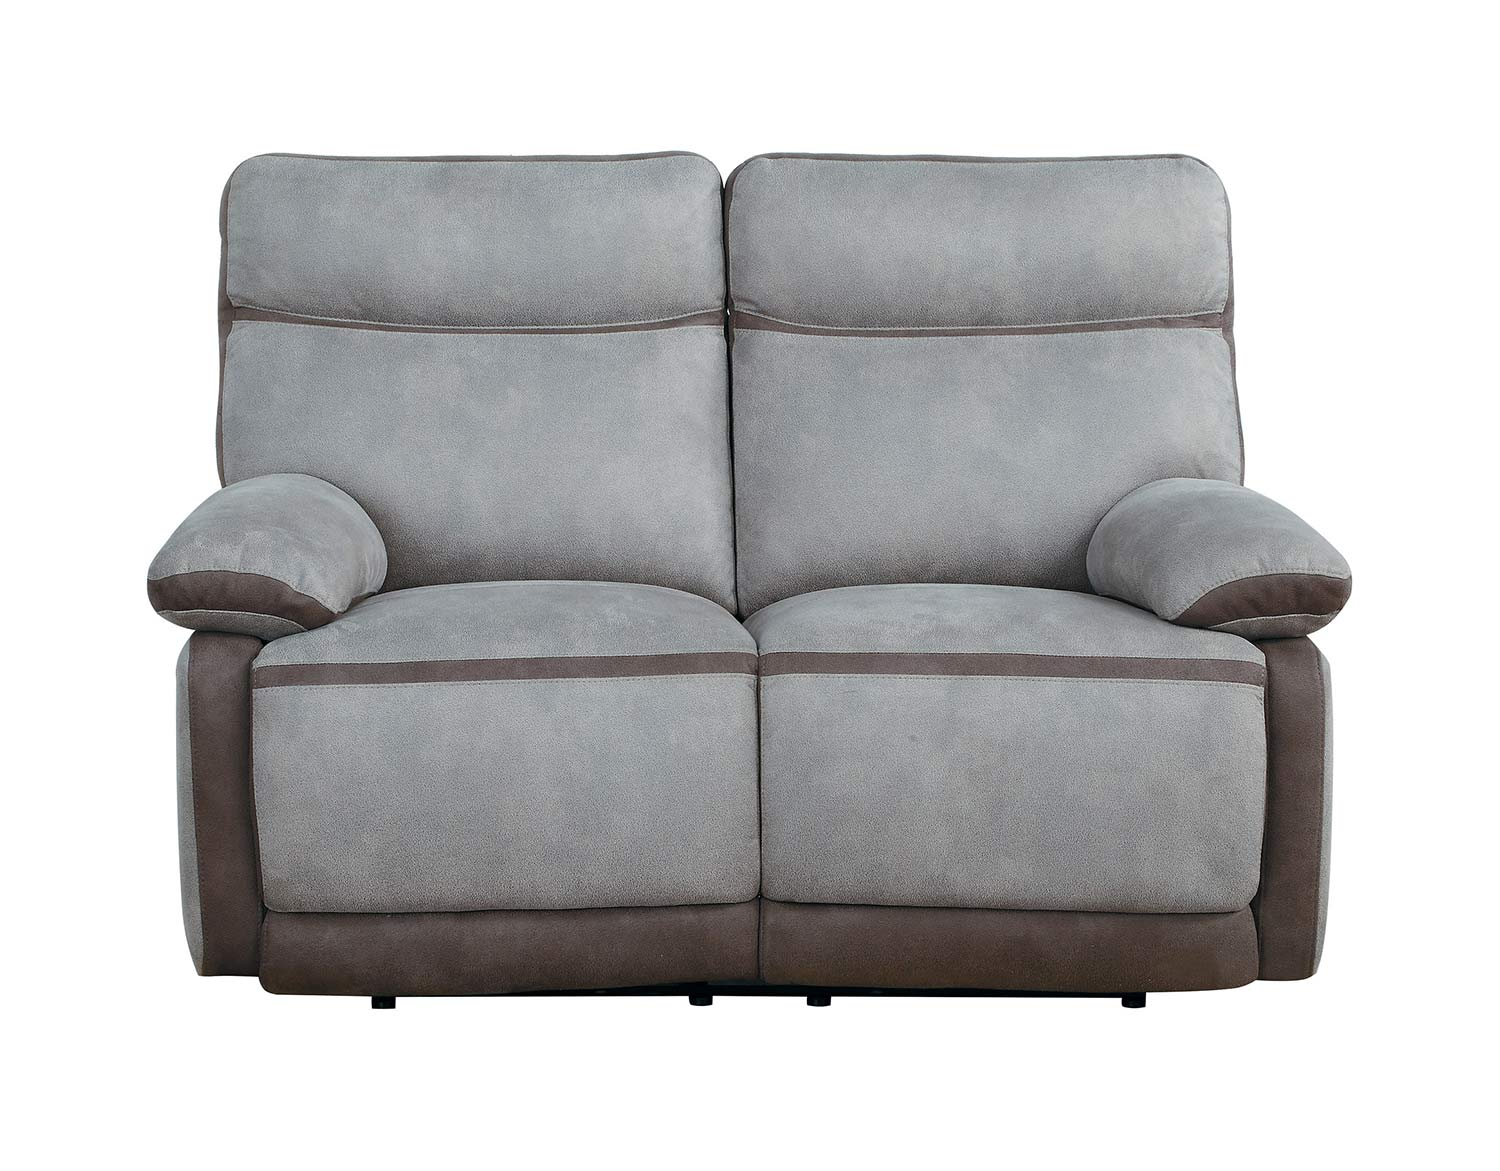 Homelegance Barilotto Power Double Reclining Love Seat With Power Headrests - Gray